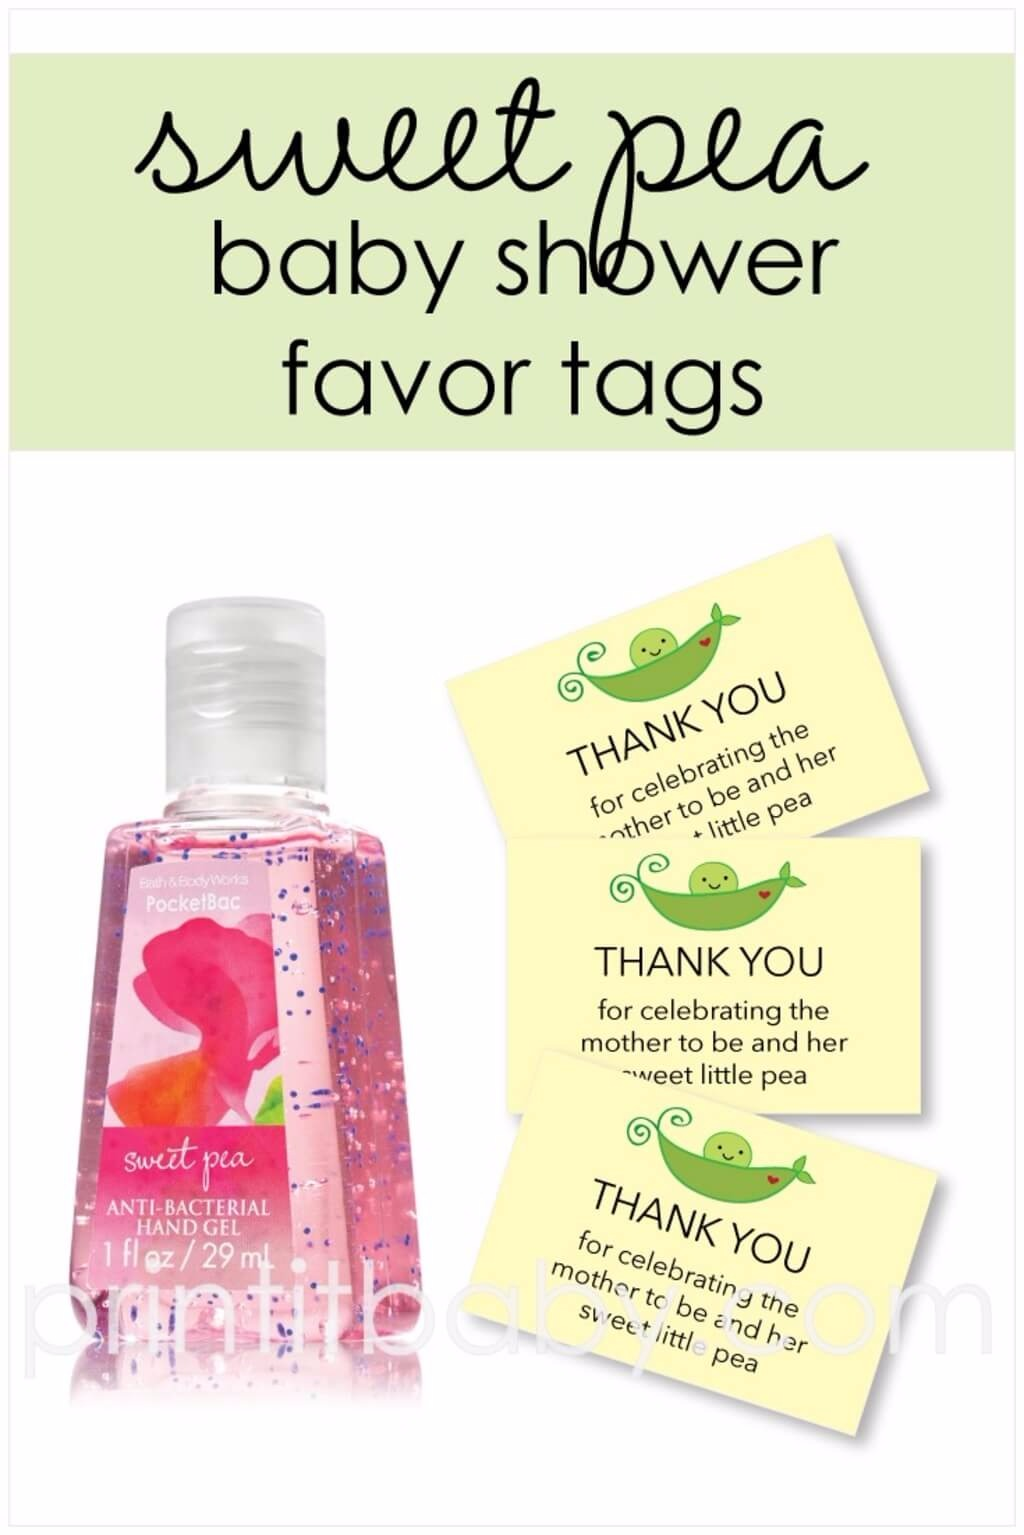 Free Printable Yellow Sweet Pea Favor Tags